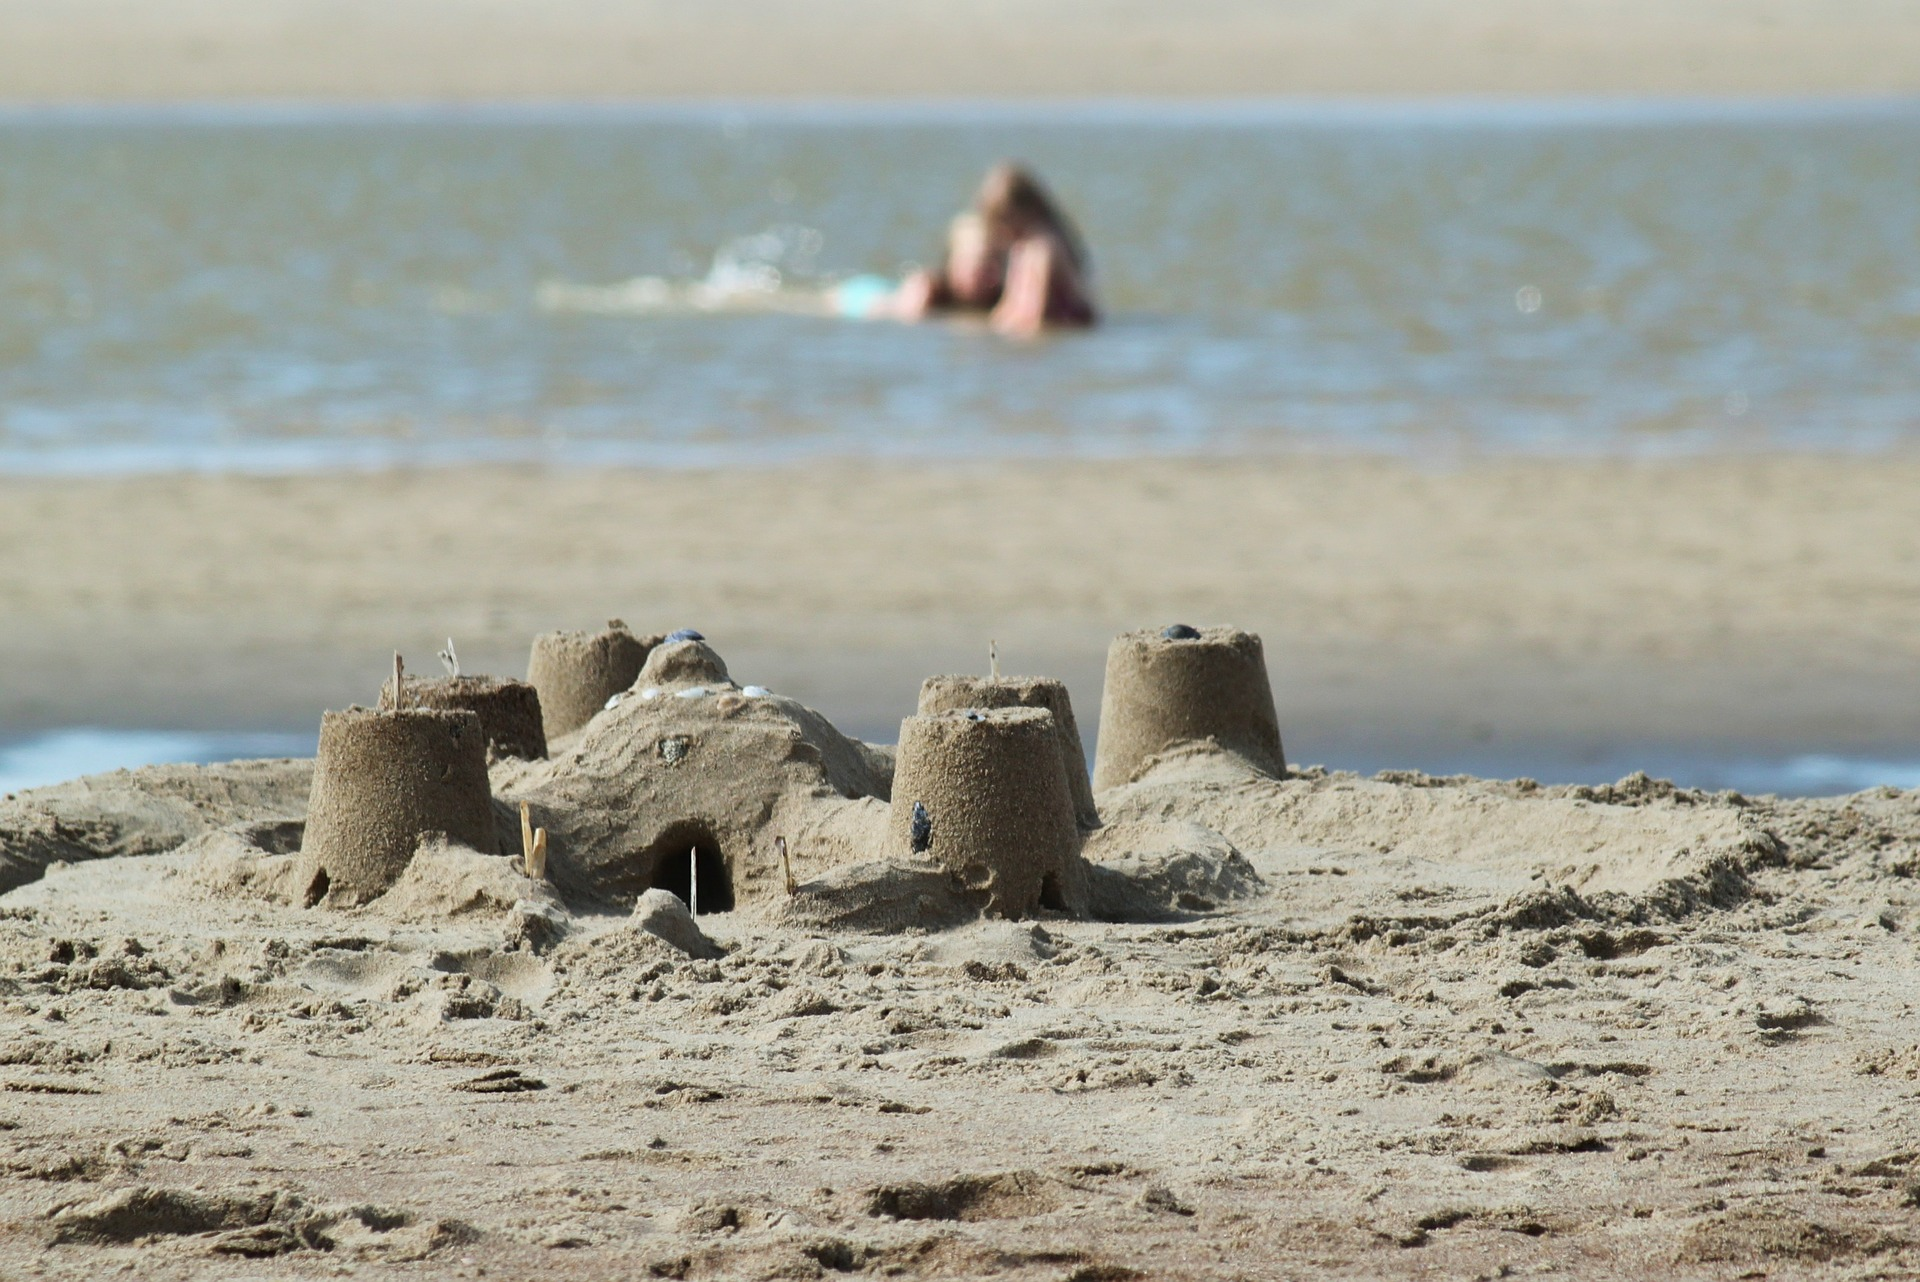 A simple sand castle with water in the background